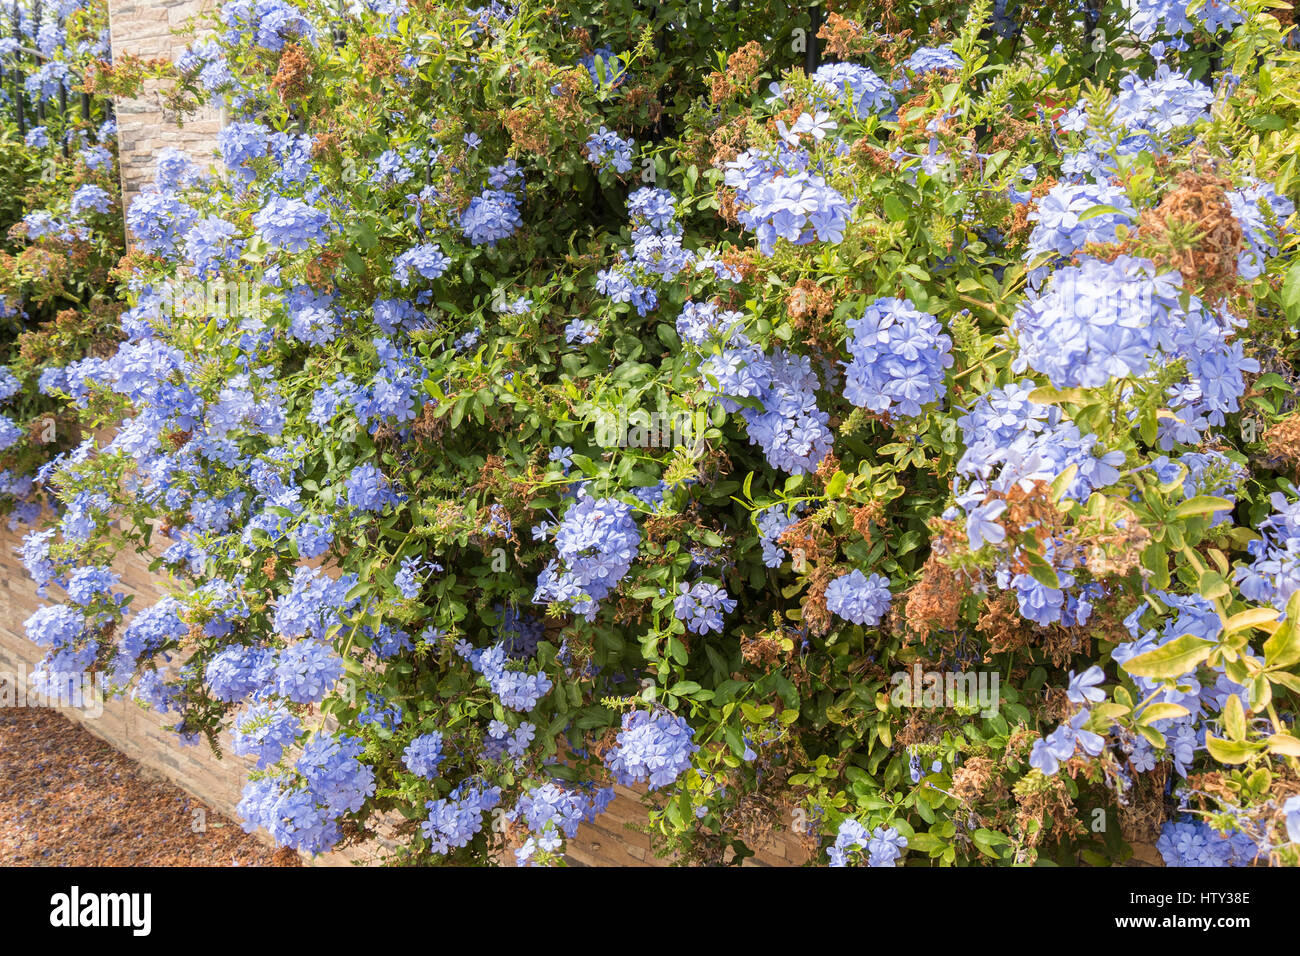 Blue Plumbago Leadwort Flowers Stock Photos Blue Plumbago Leadwort